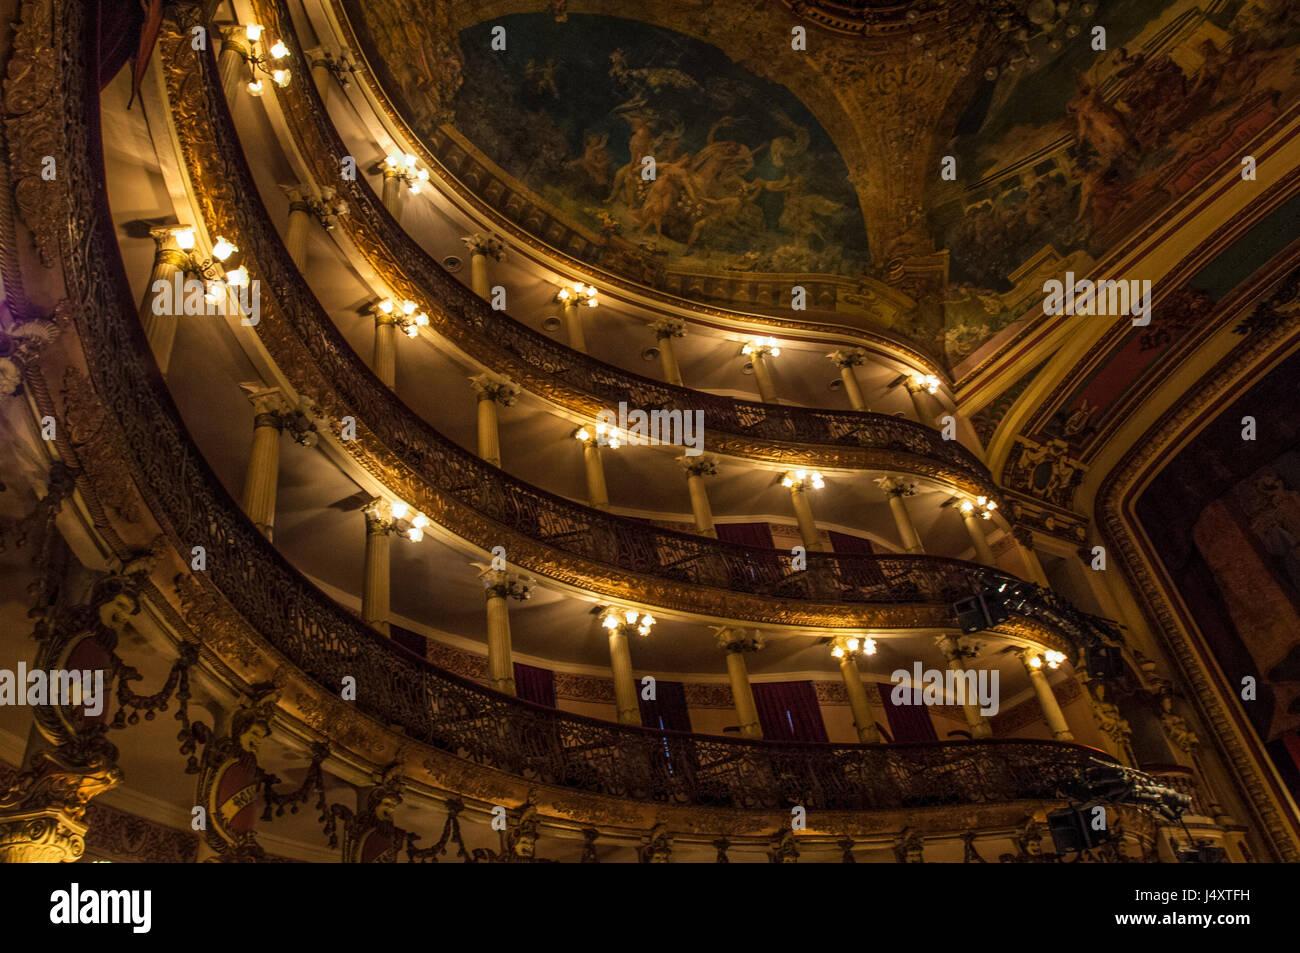 View of the interior of the Amazon Theatre under its electric lighting - Stock Image